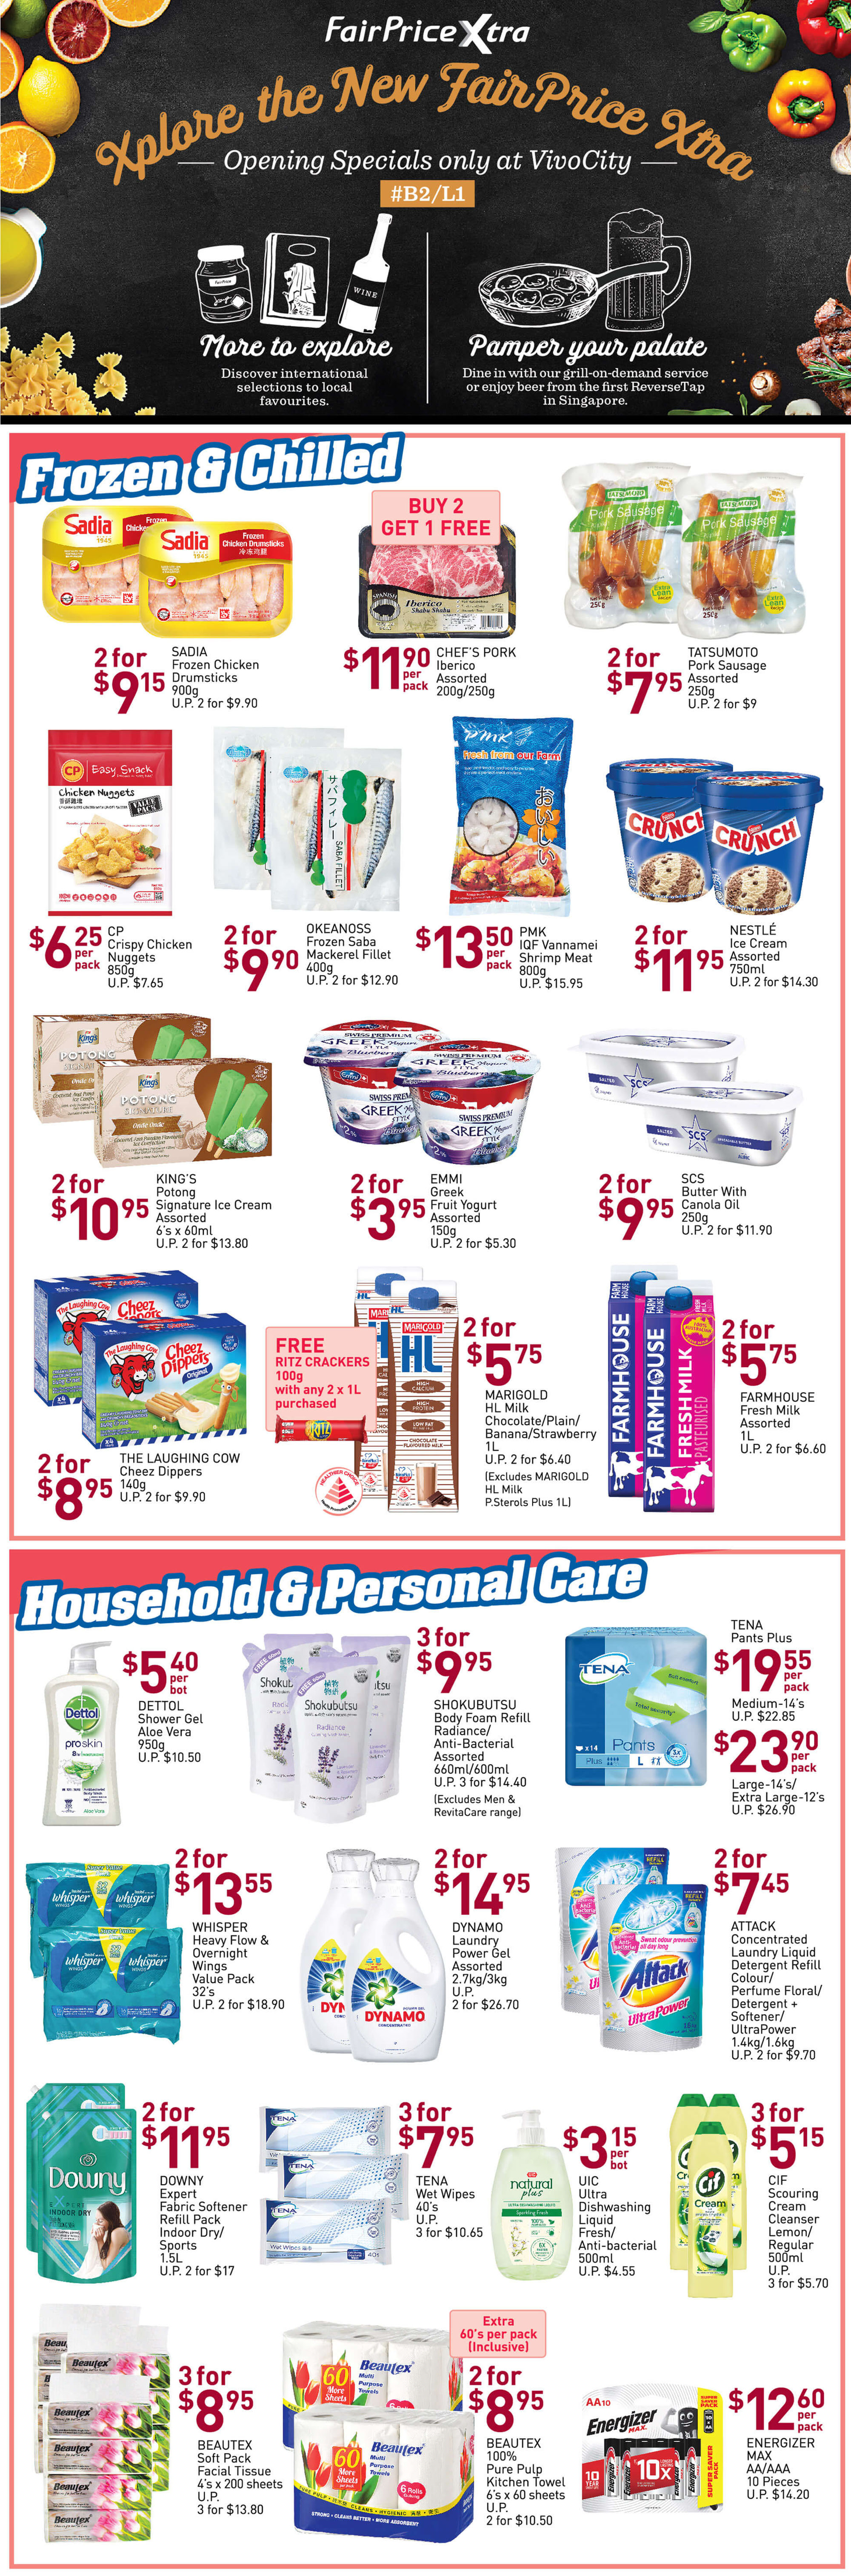 NTUC FairPrice Singapore Your Weekly Saver Promotion 8-14 Aug 2019   Why Not Deals 3 & Promotions